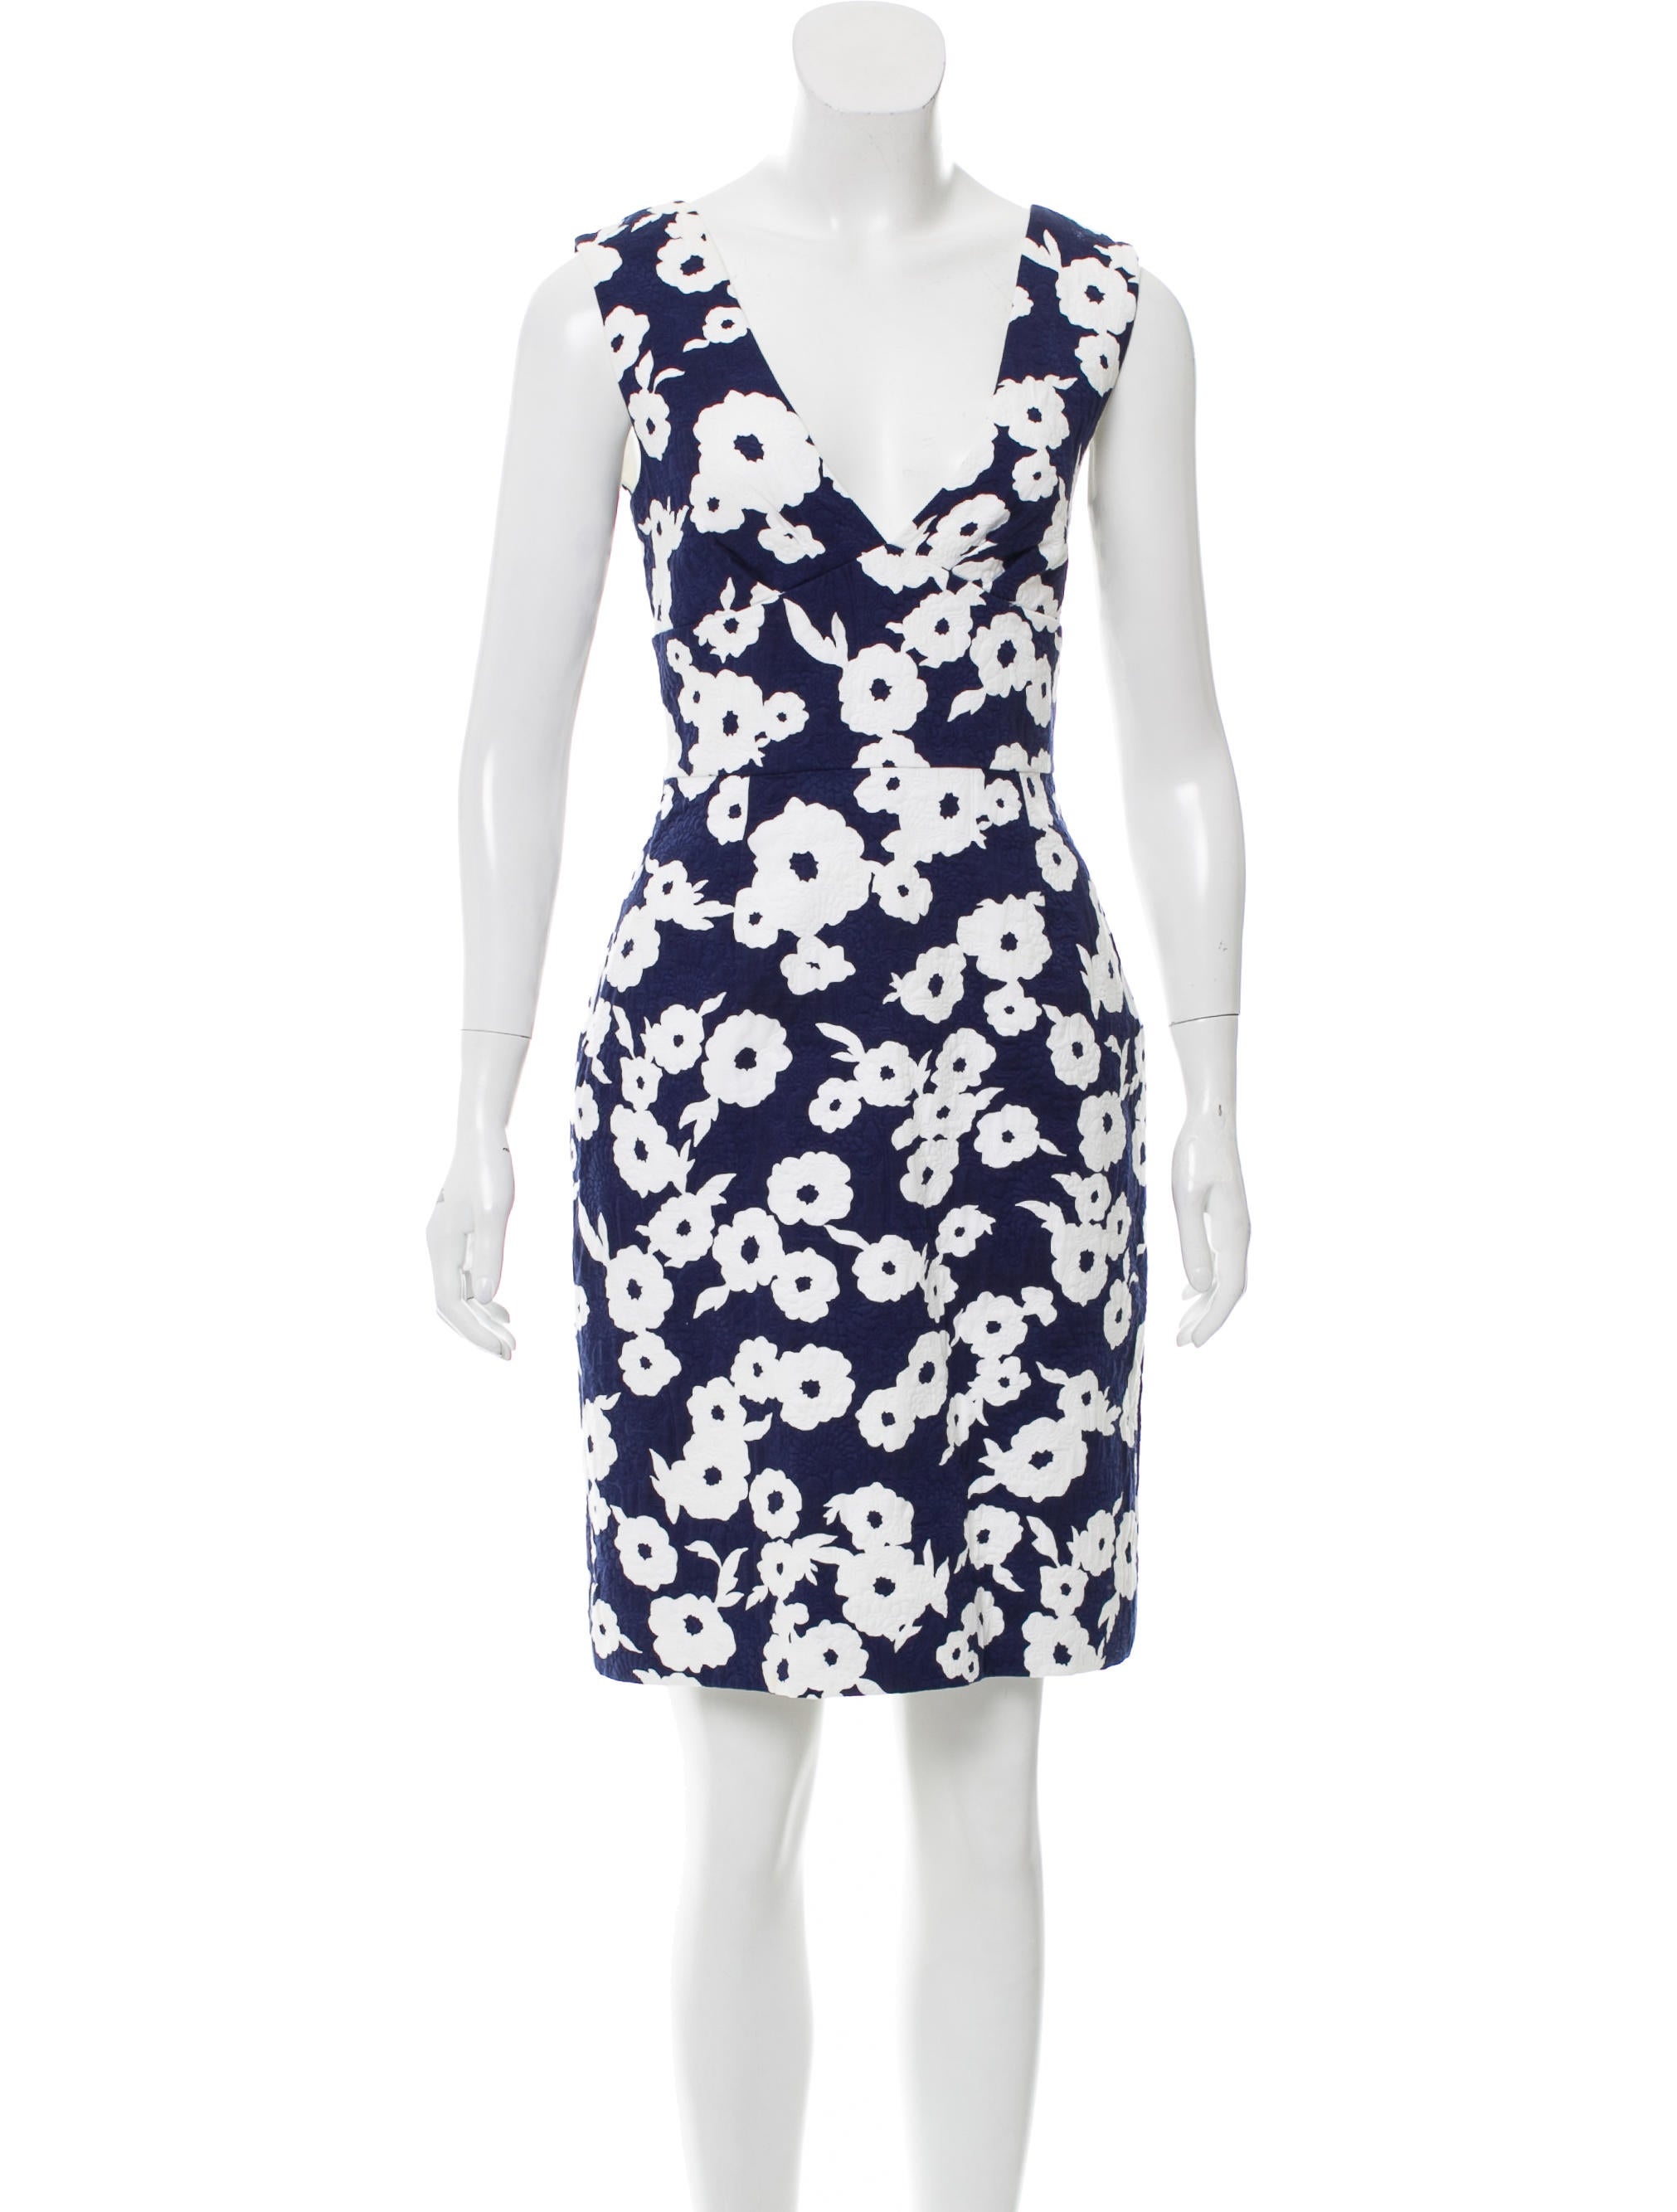 Kate Spade New York Patterned Knee Length Dress Clothing  : WKA599201enlarged from www.therealreal.com size 2022 x 2667 jpeg 236kB